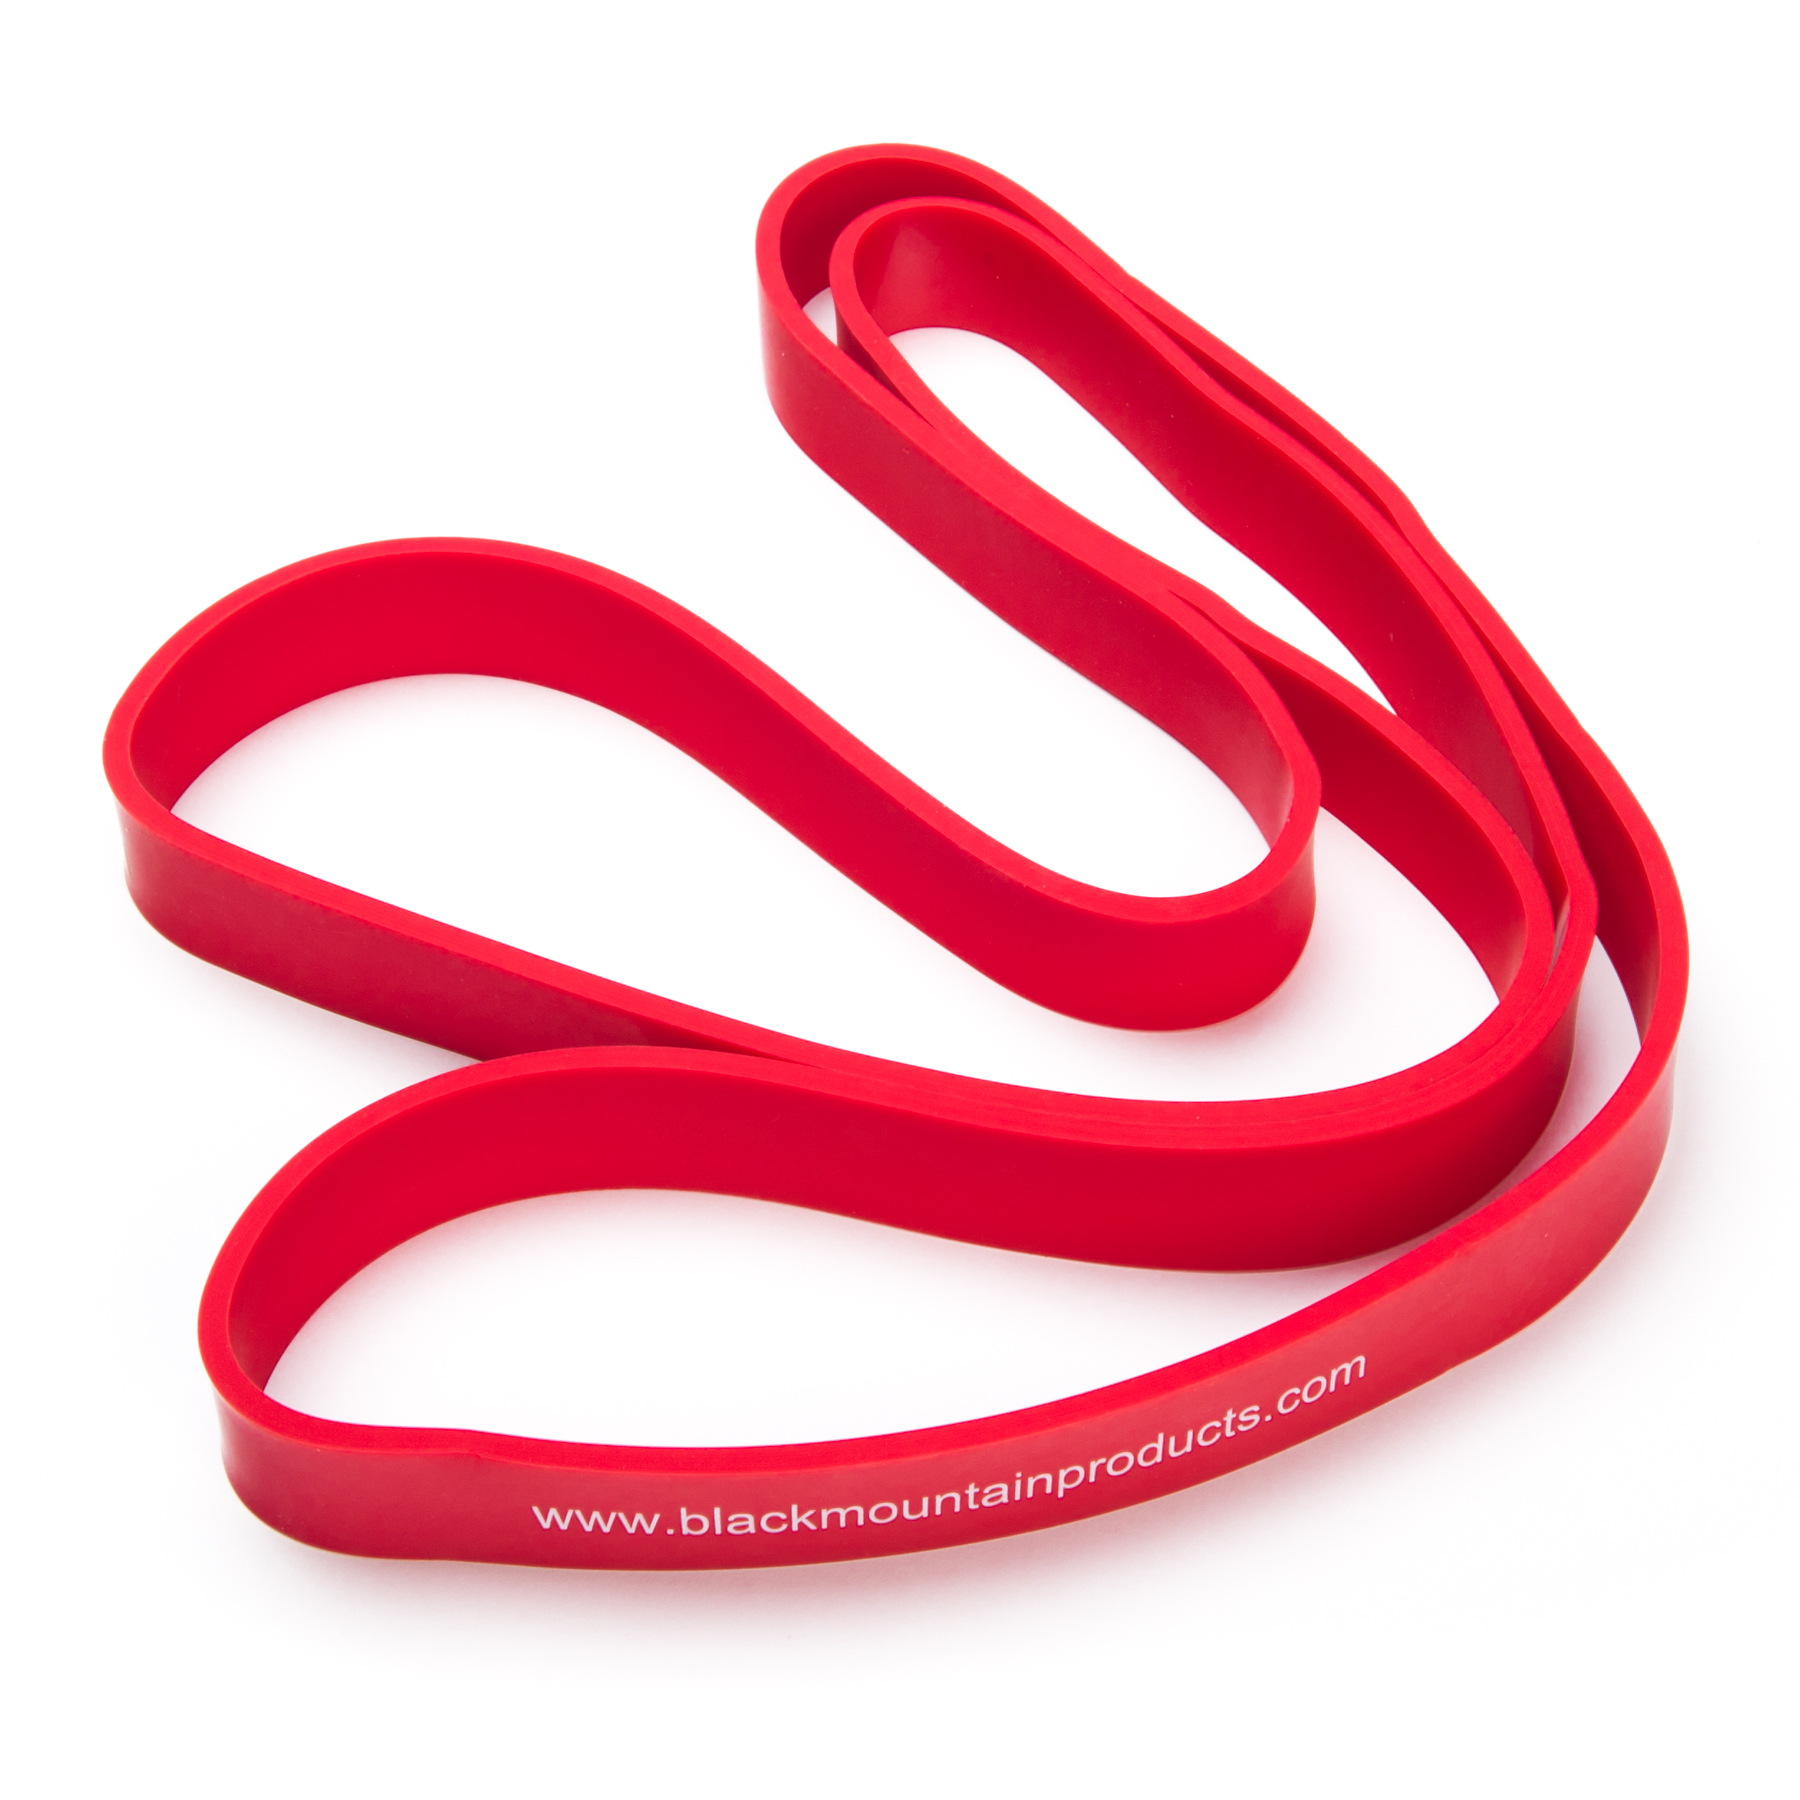 Black Mountain Products Strength Loop Resistance Band, Red